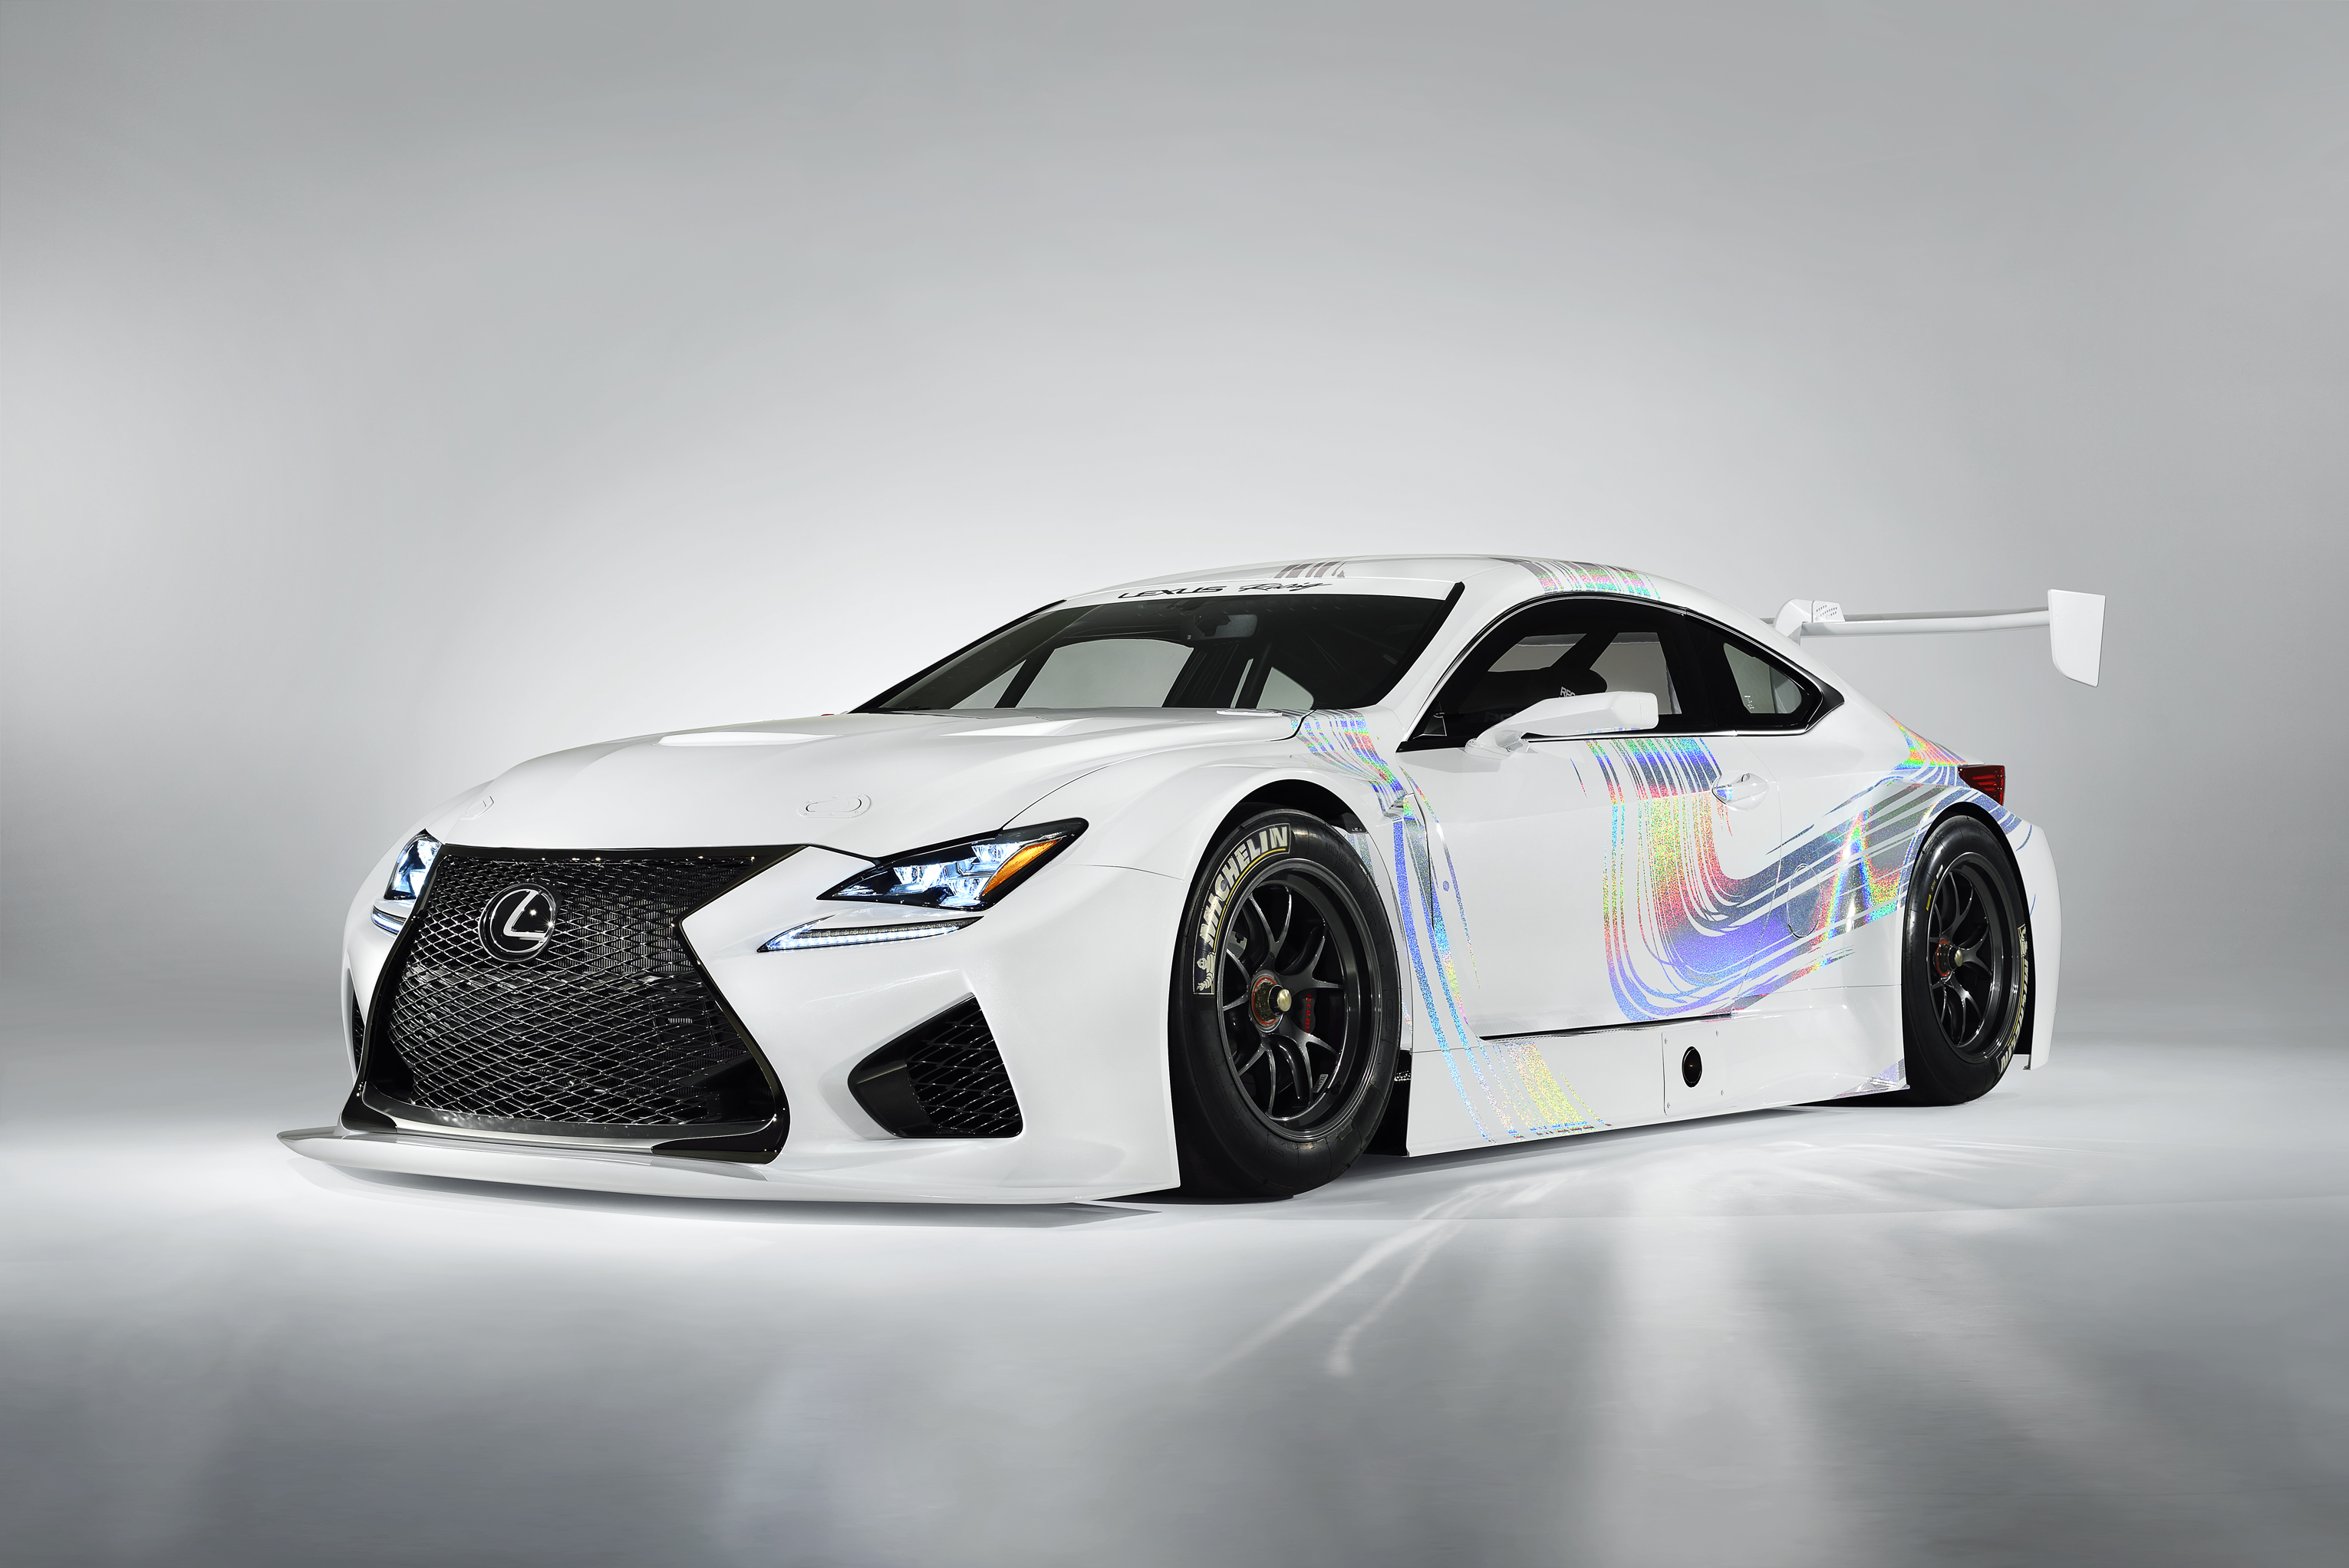 Lexus RC F GT3 concept car is leading Lexus' charge into global racing